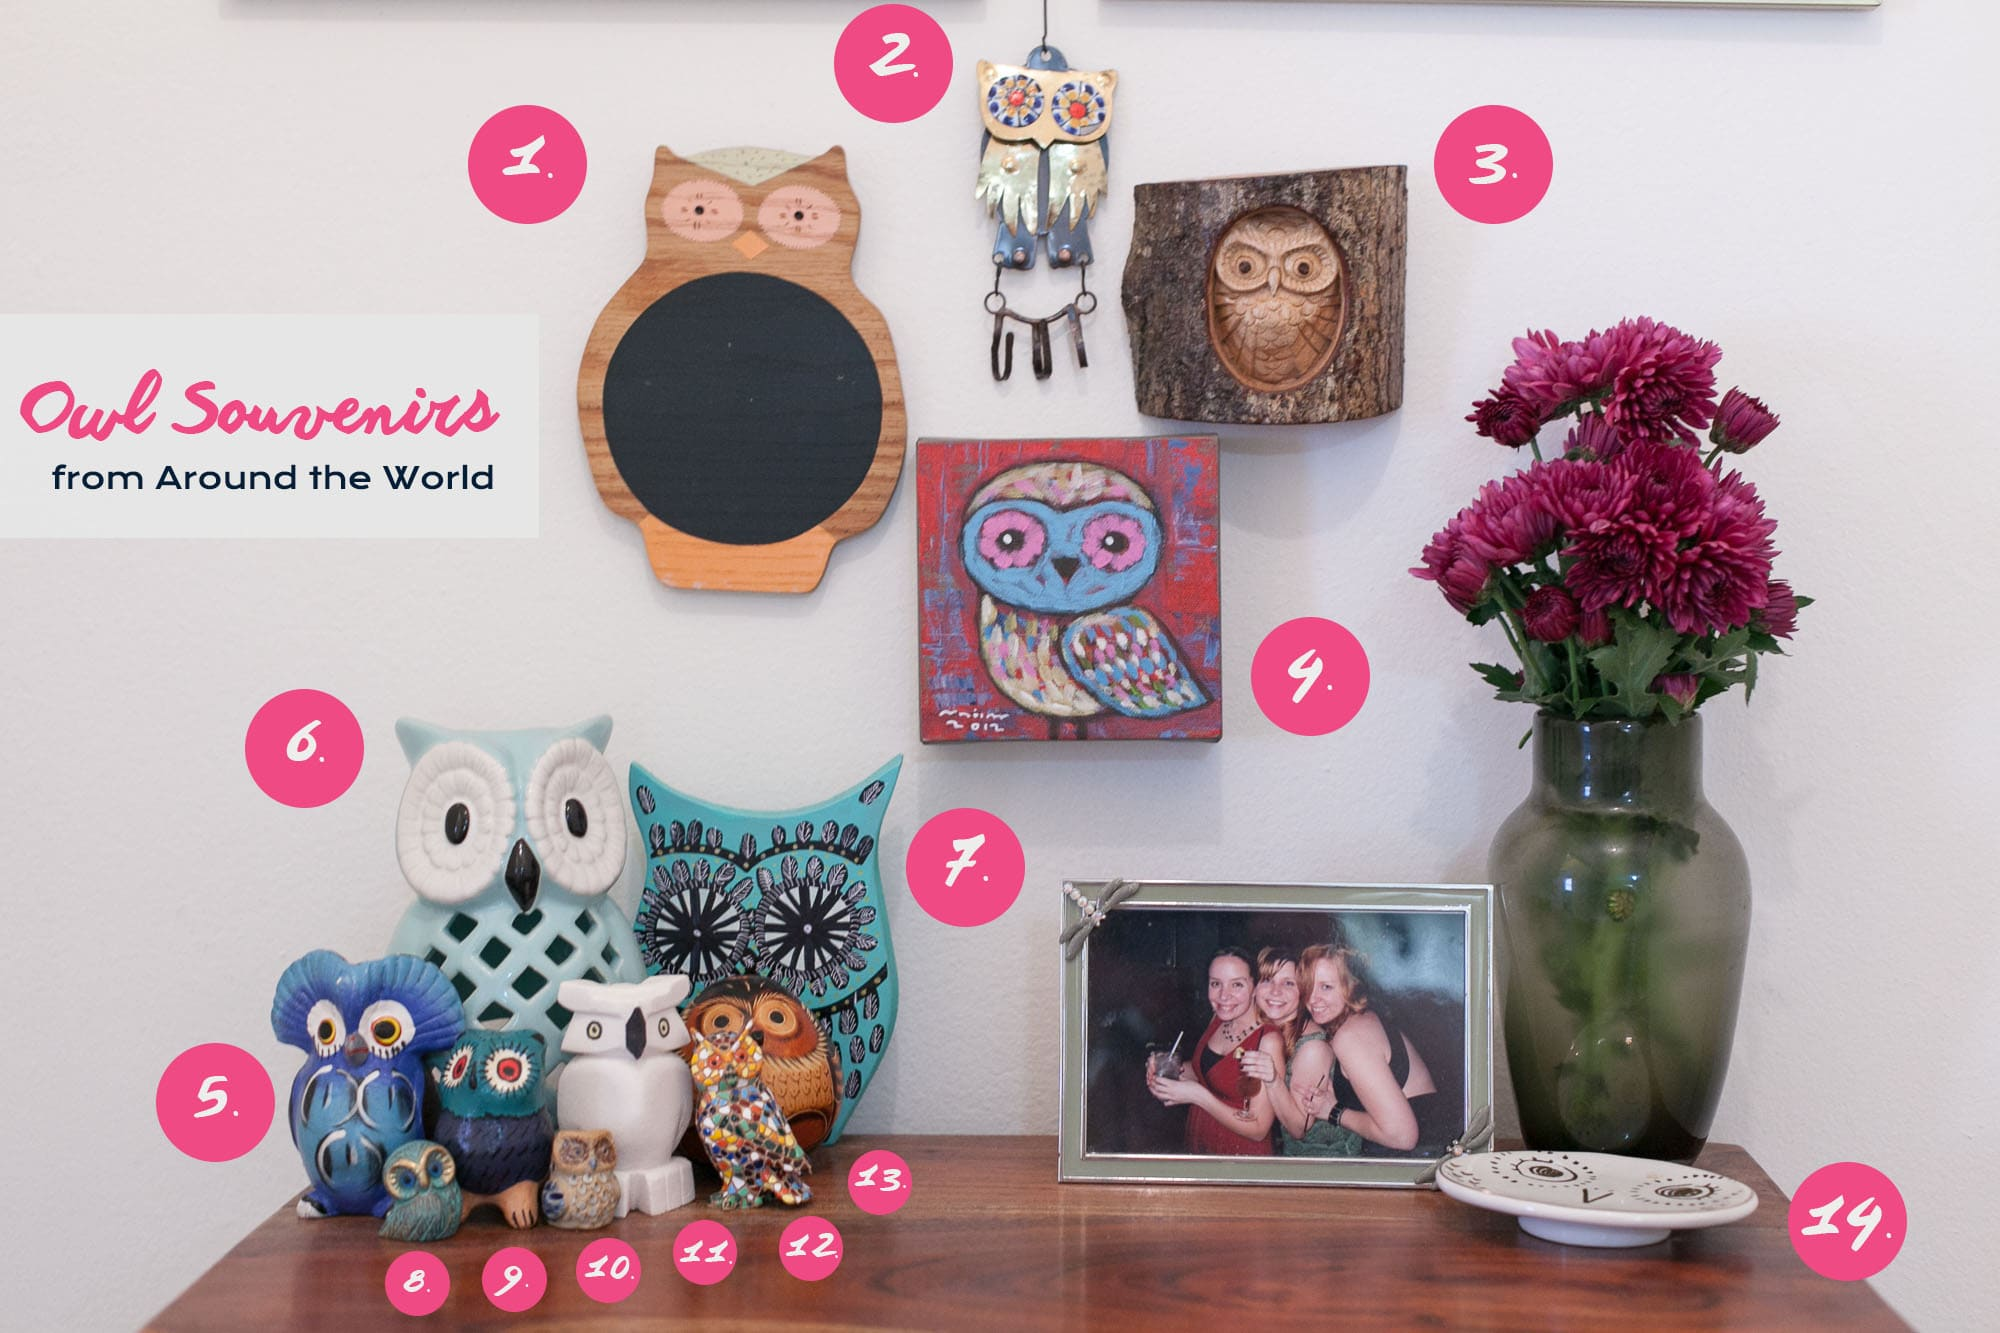 Collection of owl souvenirs from around the world.